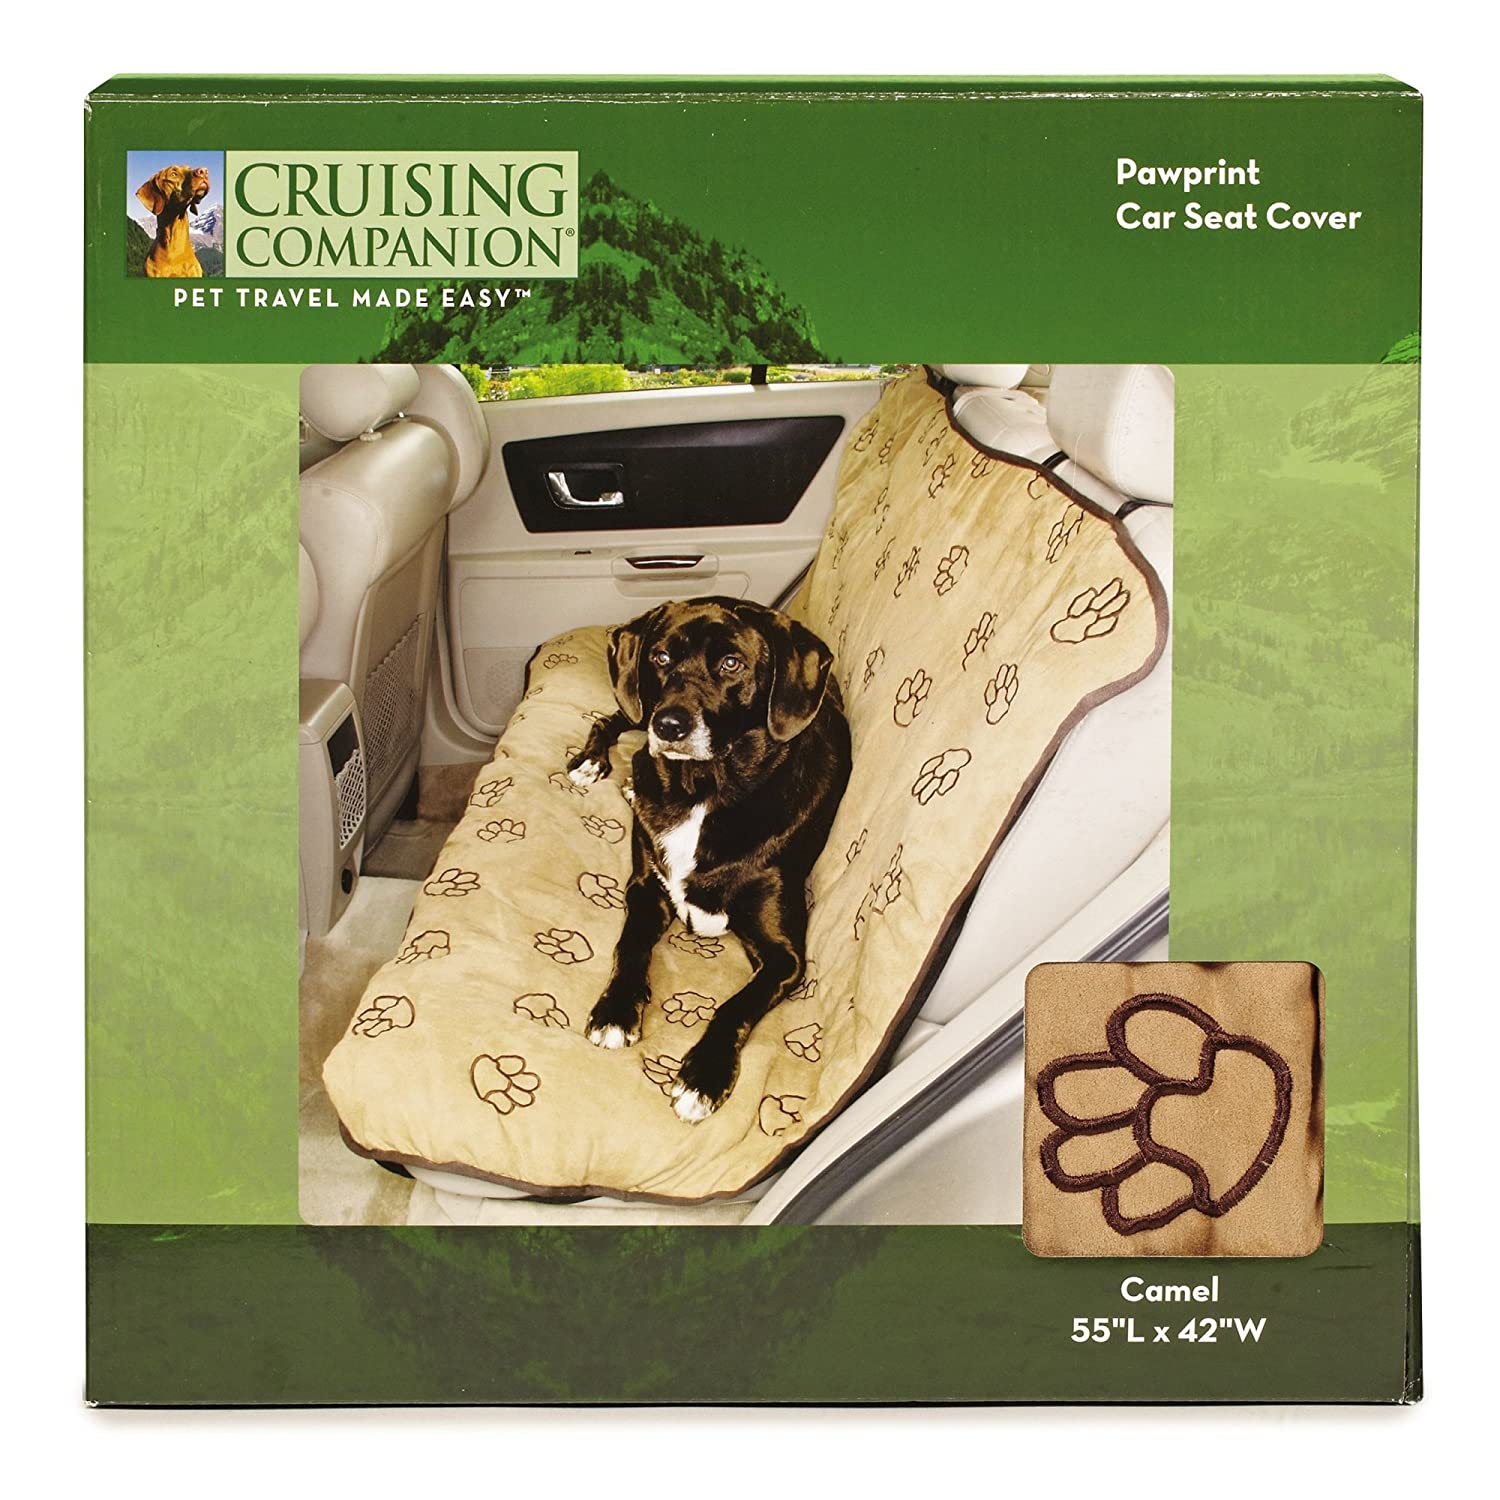 Amazon Cruising Companion Pawprint Car Seat Covers